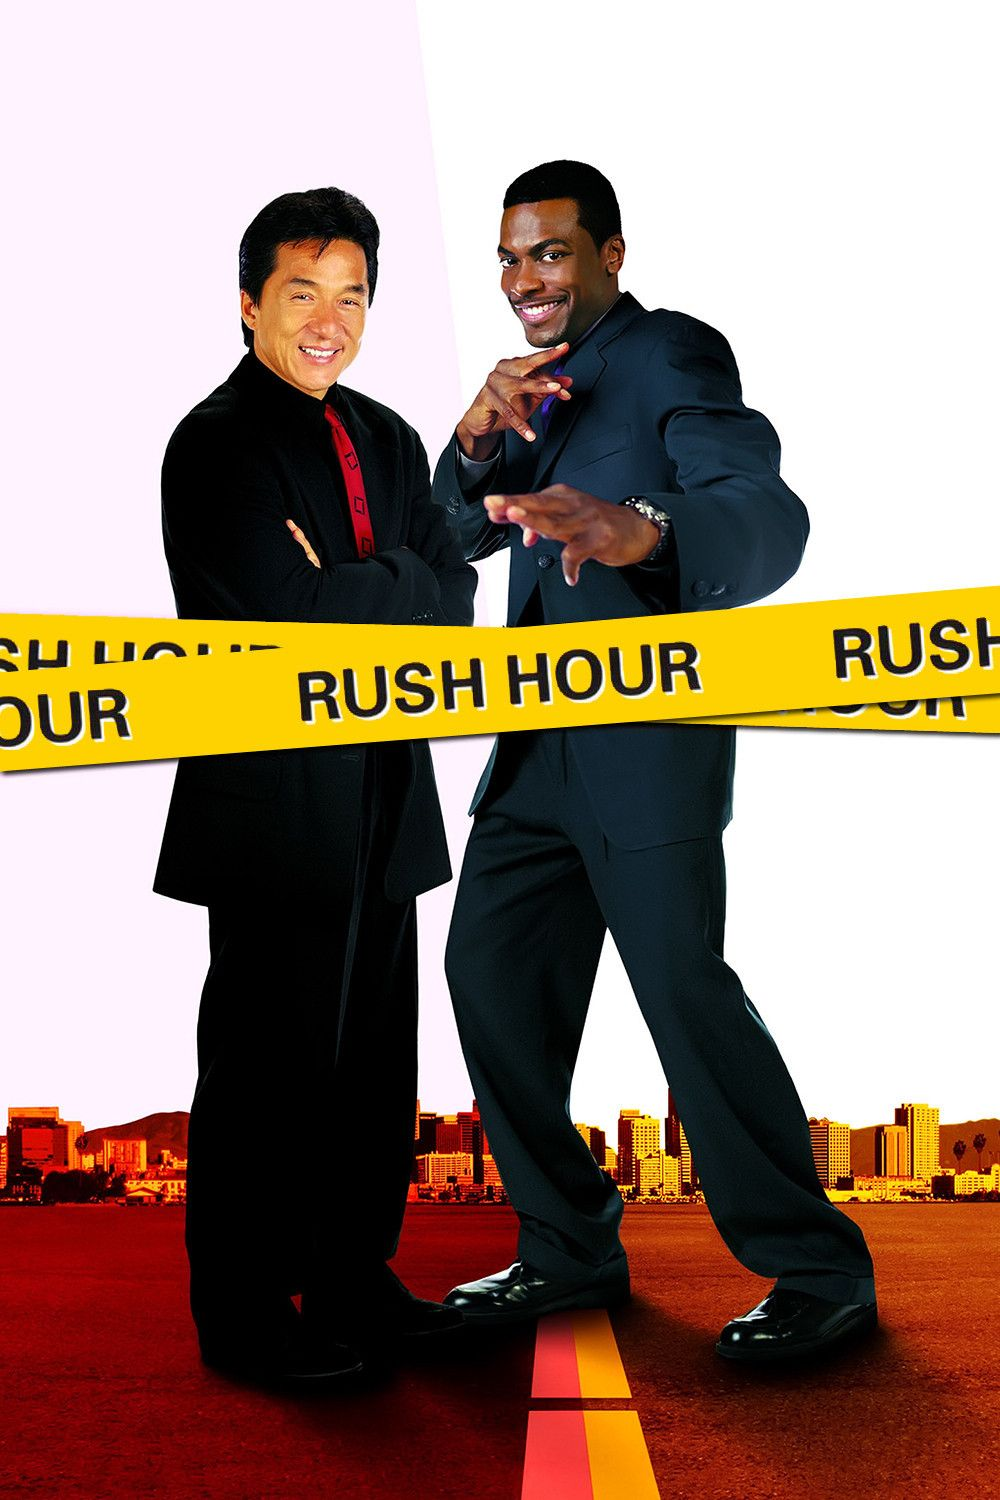 Rush Hour Full Movies Online Free Rush Hour Streaming